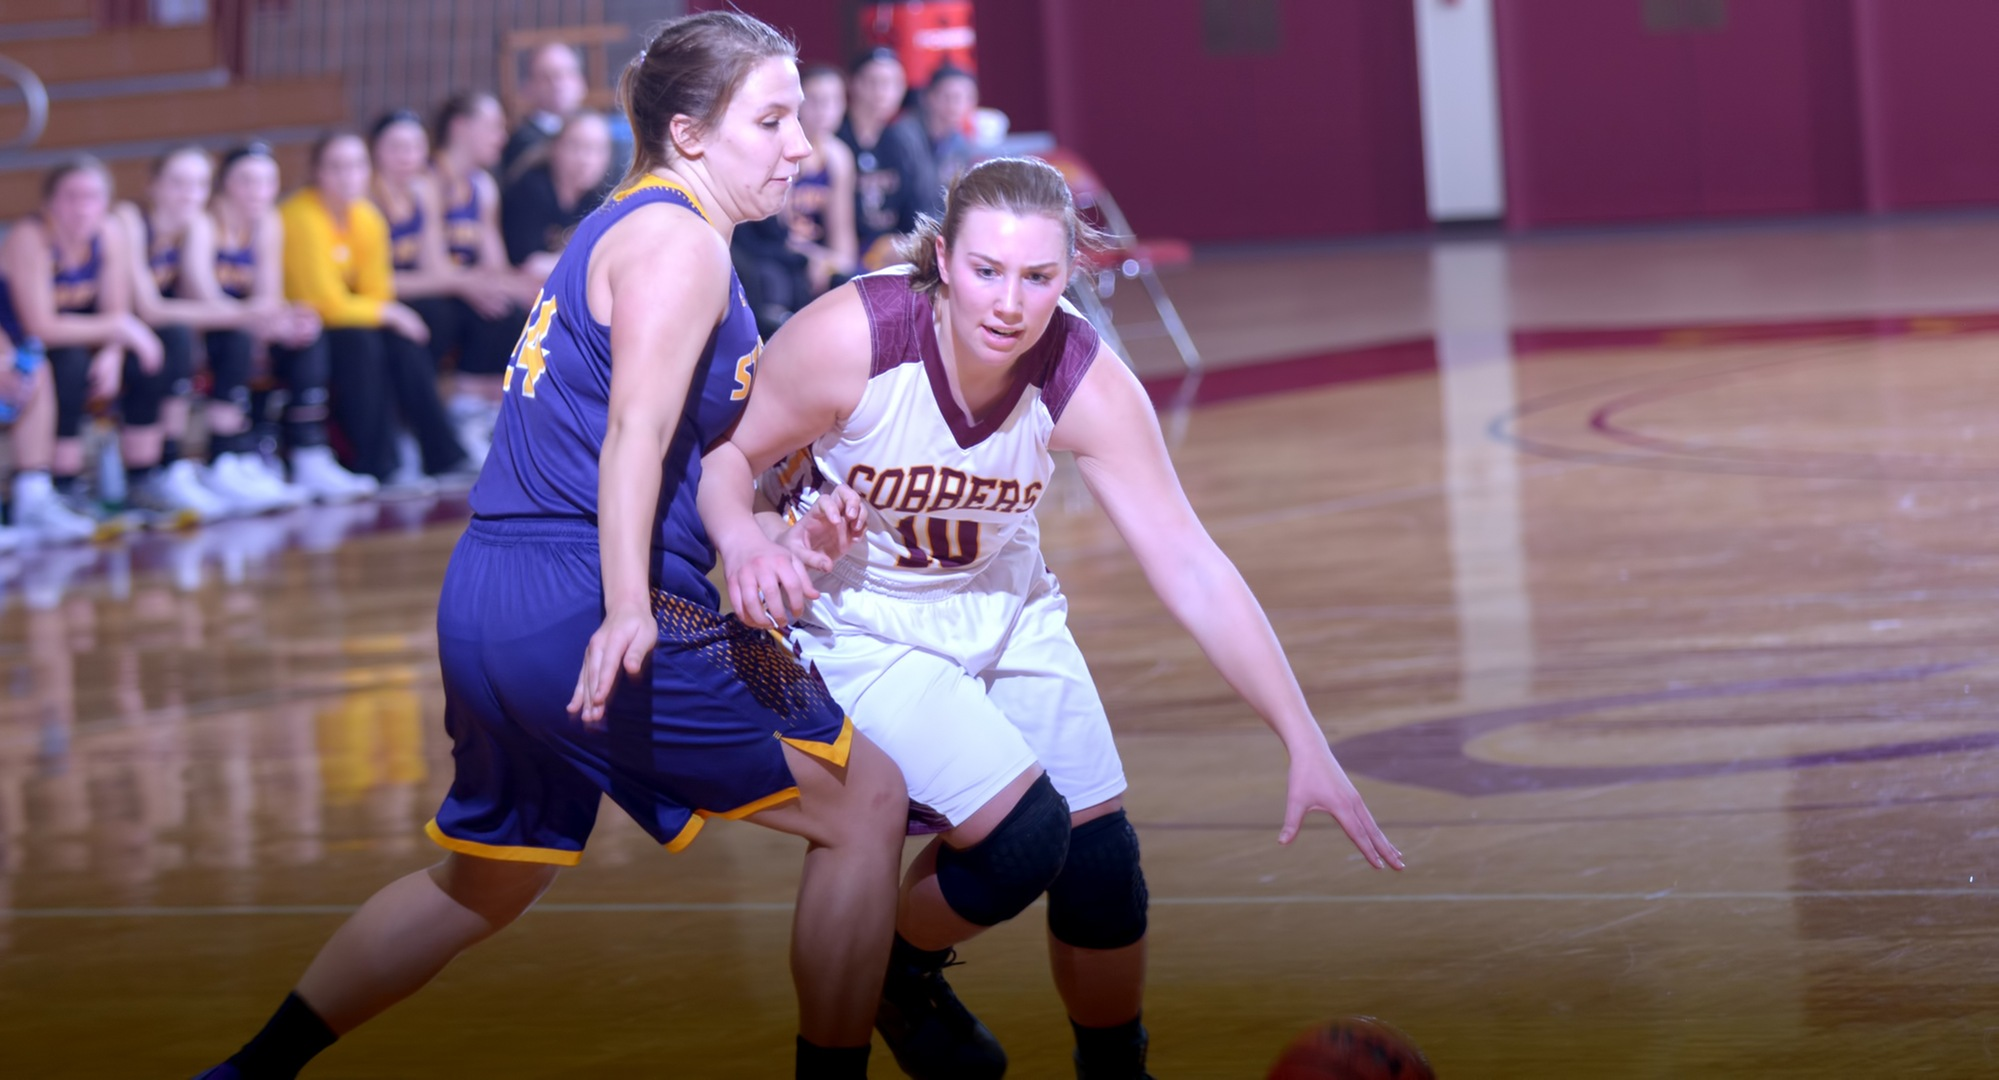 Lincoln Haiby had nine points and four rebounds in the Cobbers' game at St. Catherine.